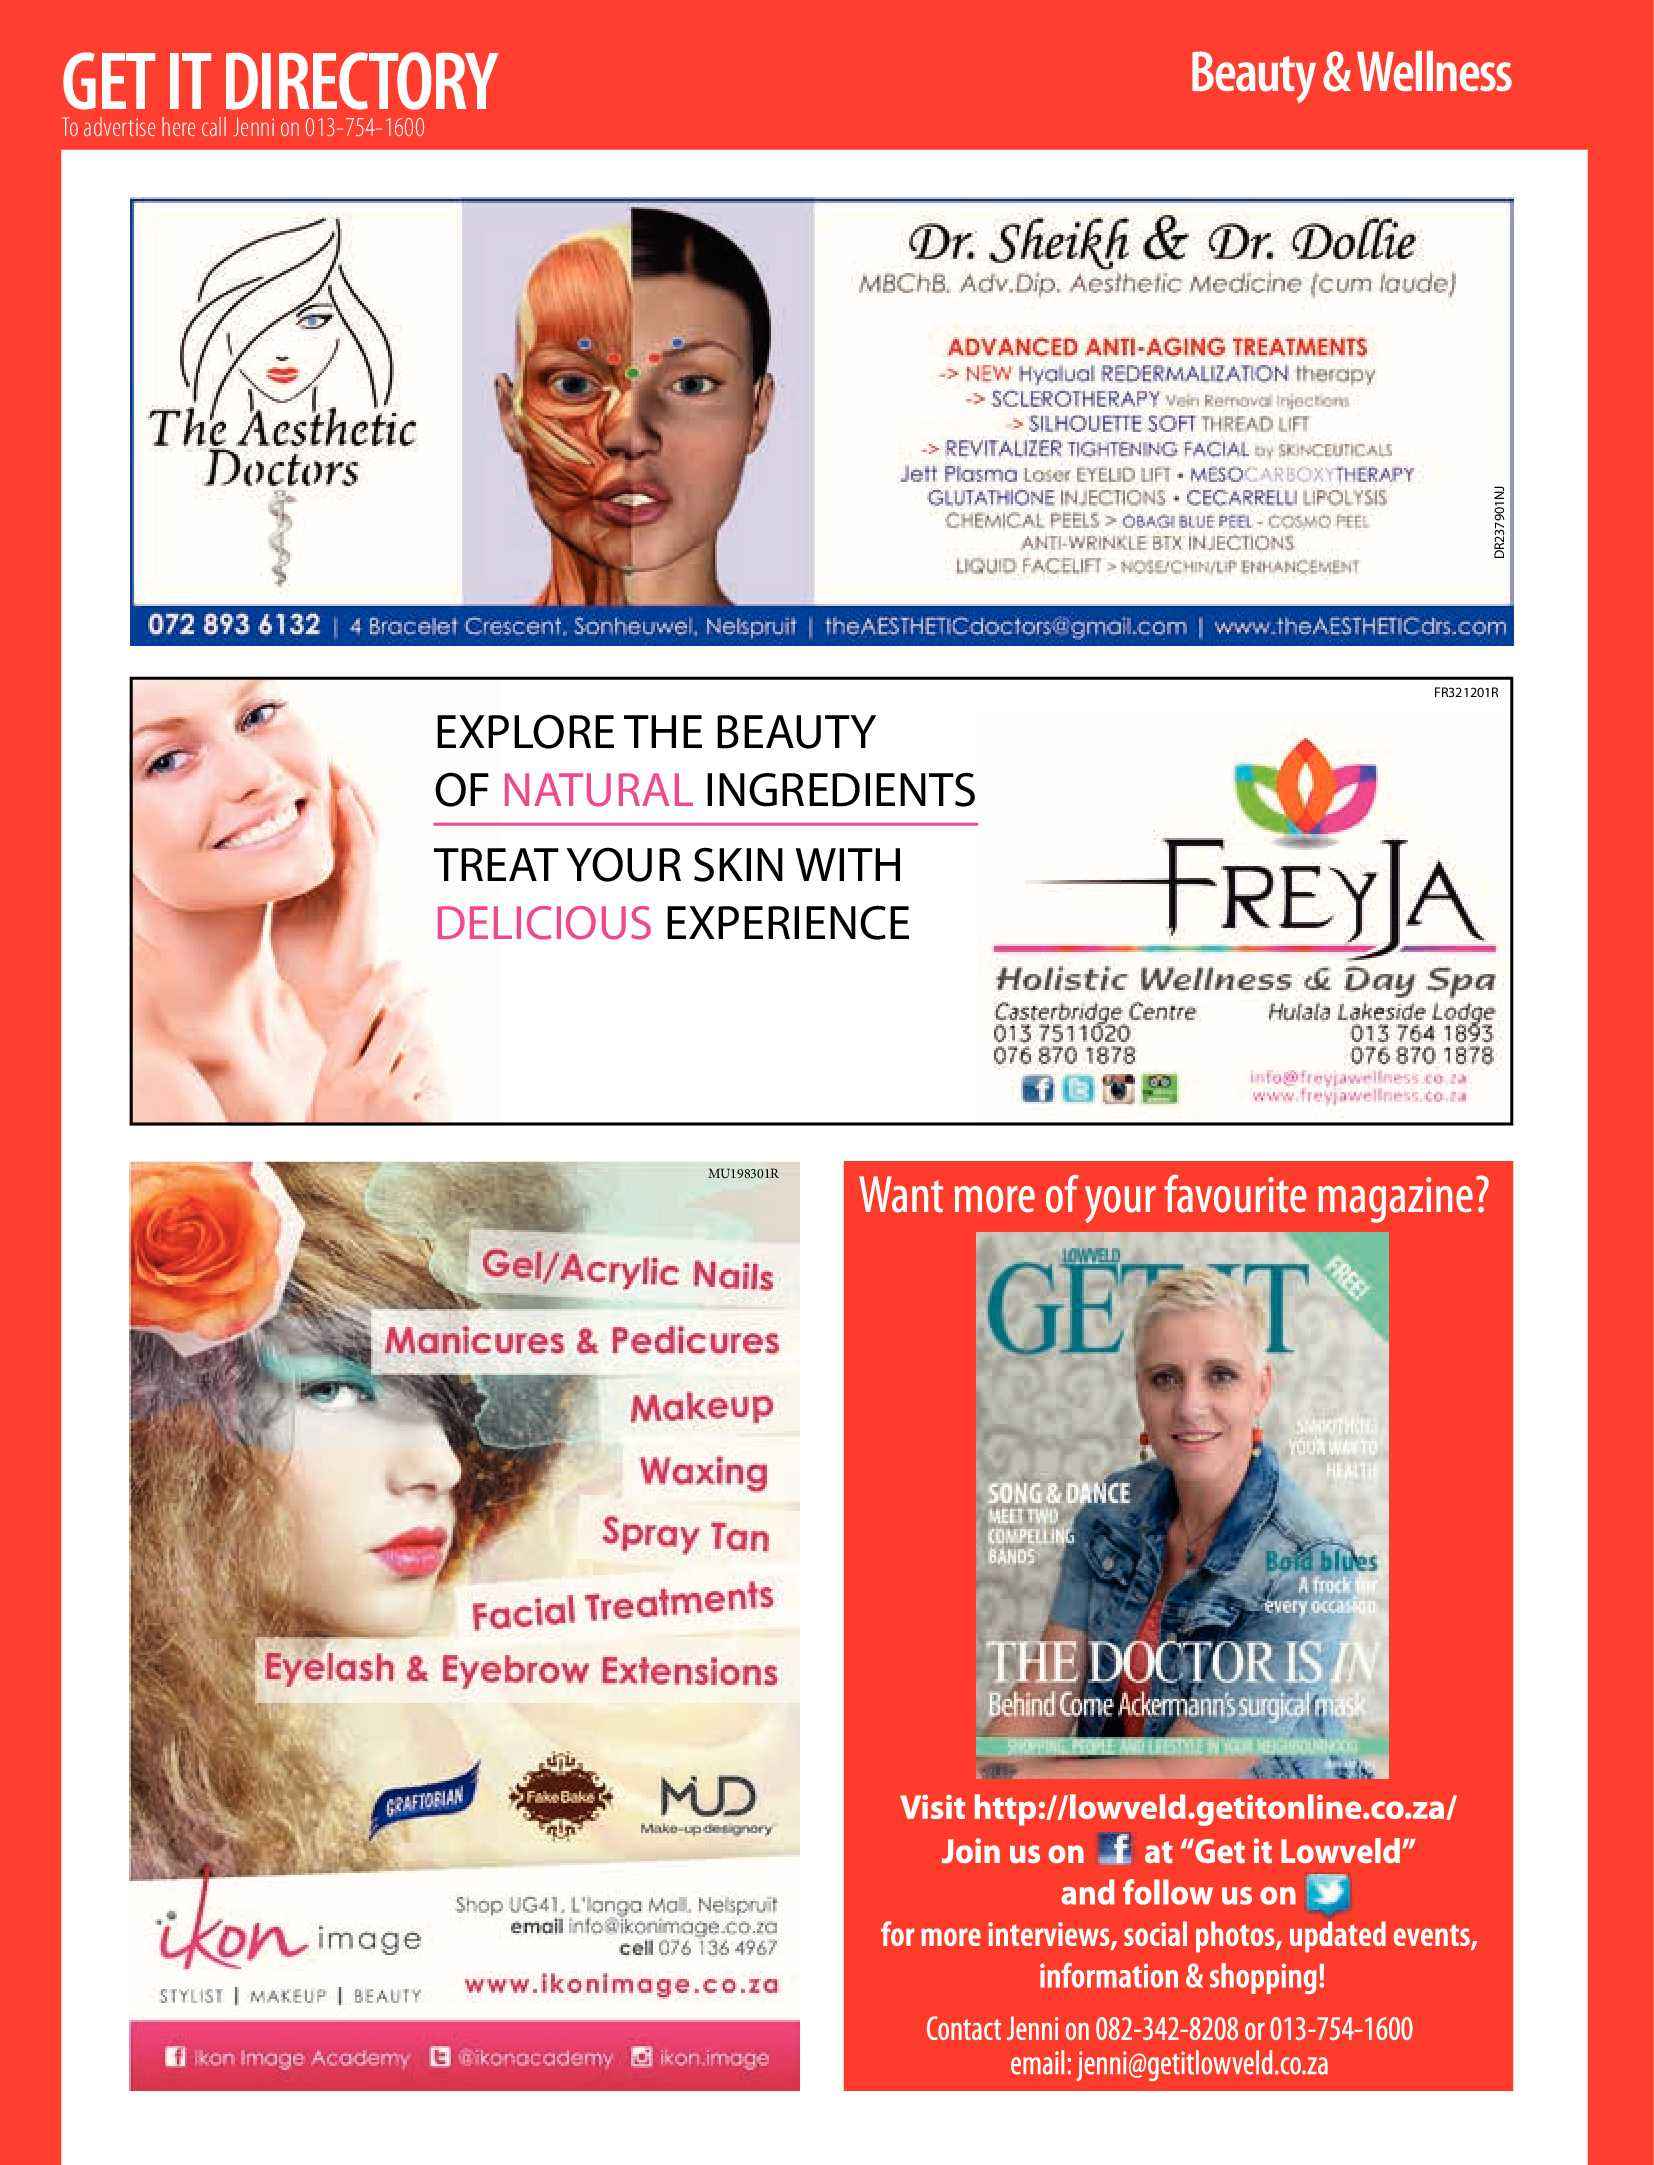 get-it-lowveld-january-2017-epapers-page-64